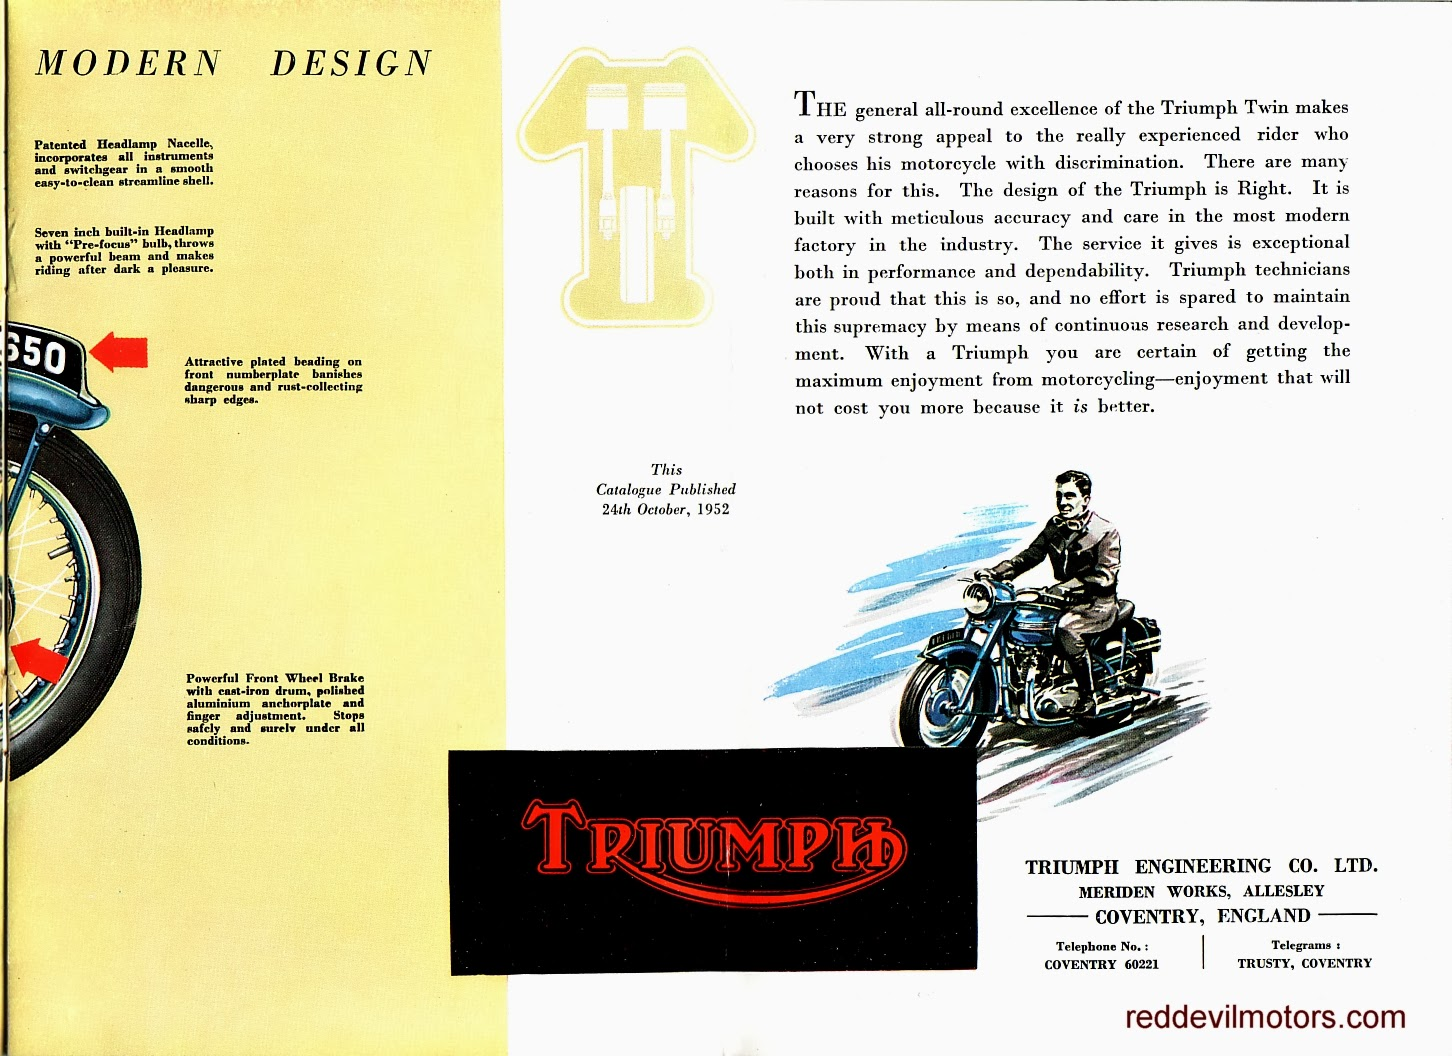 Vincent motorcycle brochure 1952 front cover - Triumph Brochure 1952 Page 2